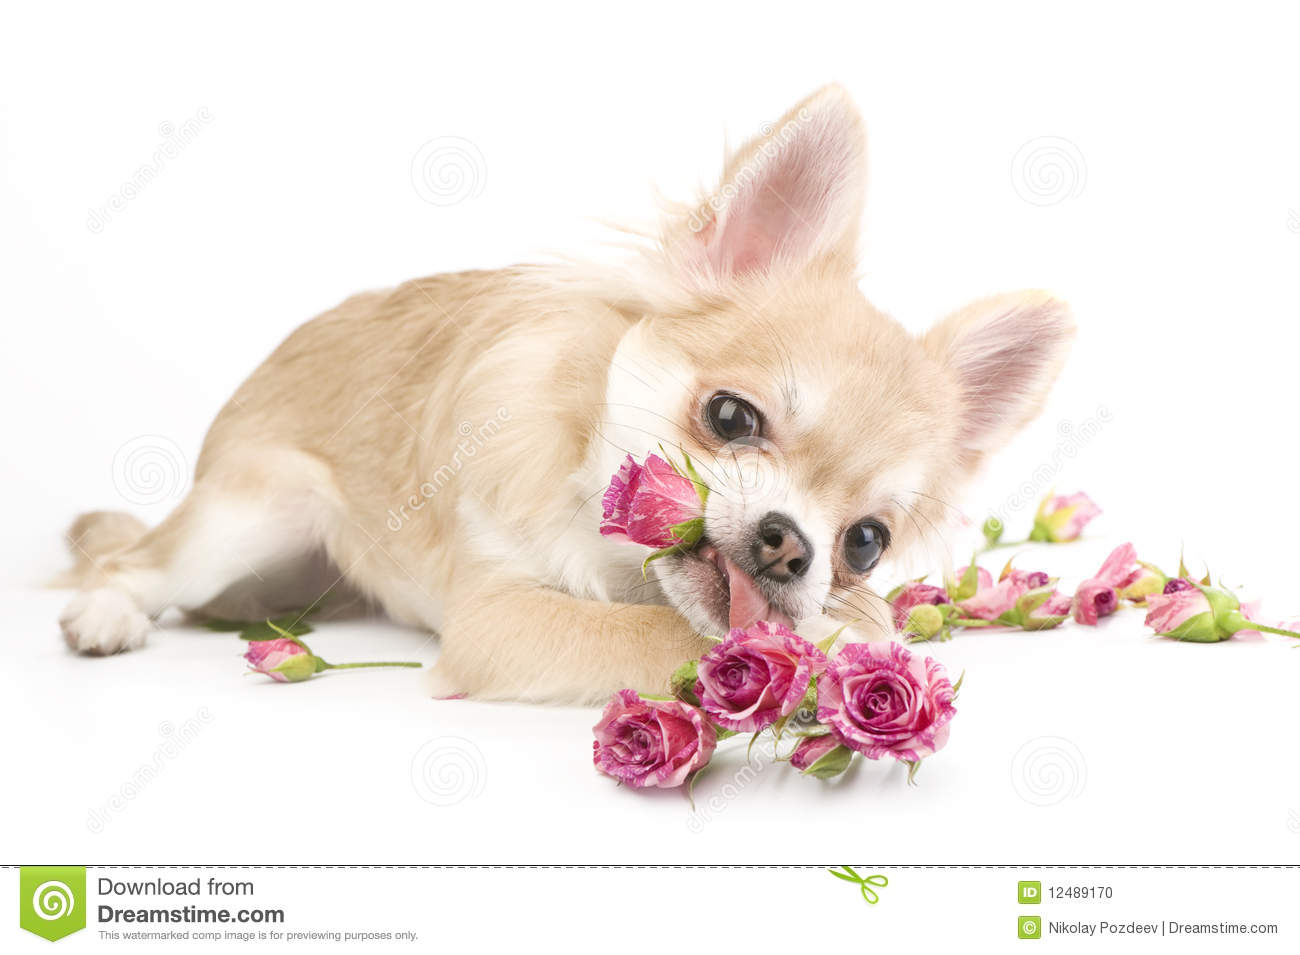 Happy Mothers Day Hd Wallpaper Amusing Chihuahua Puppy With Roses Stock Photo Image